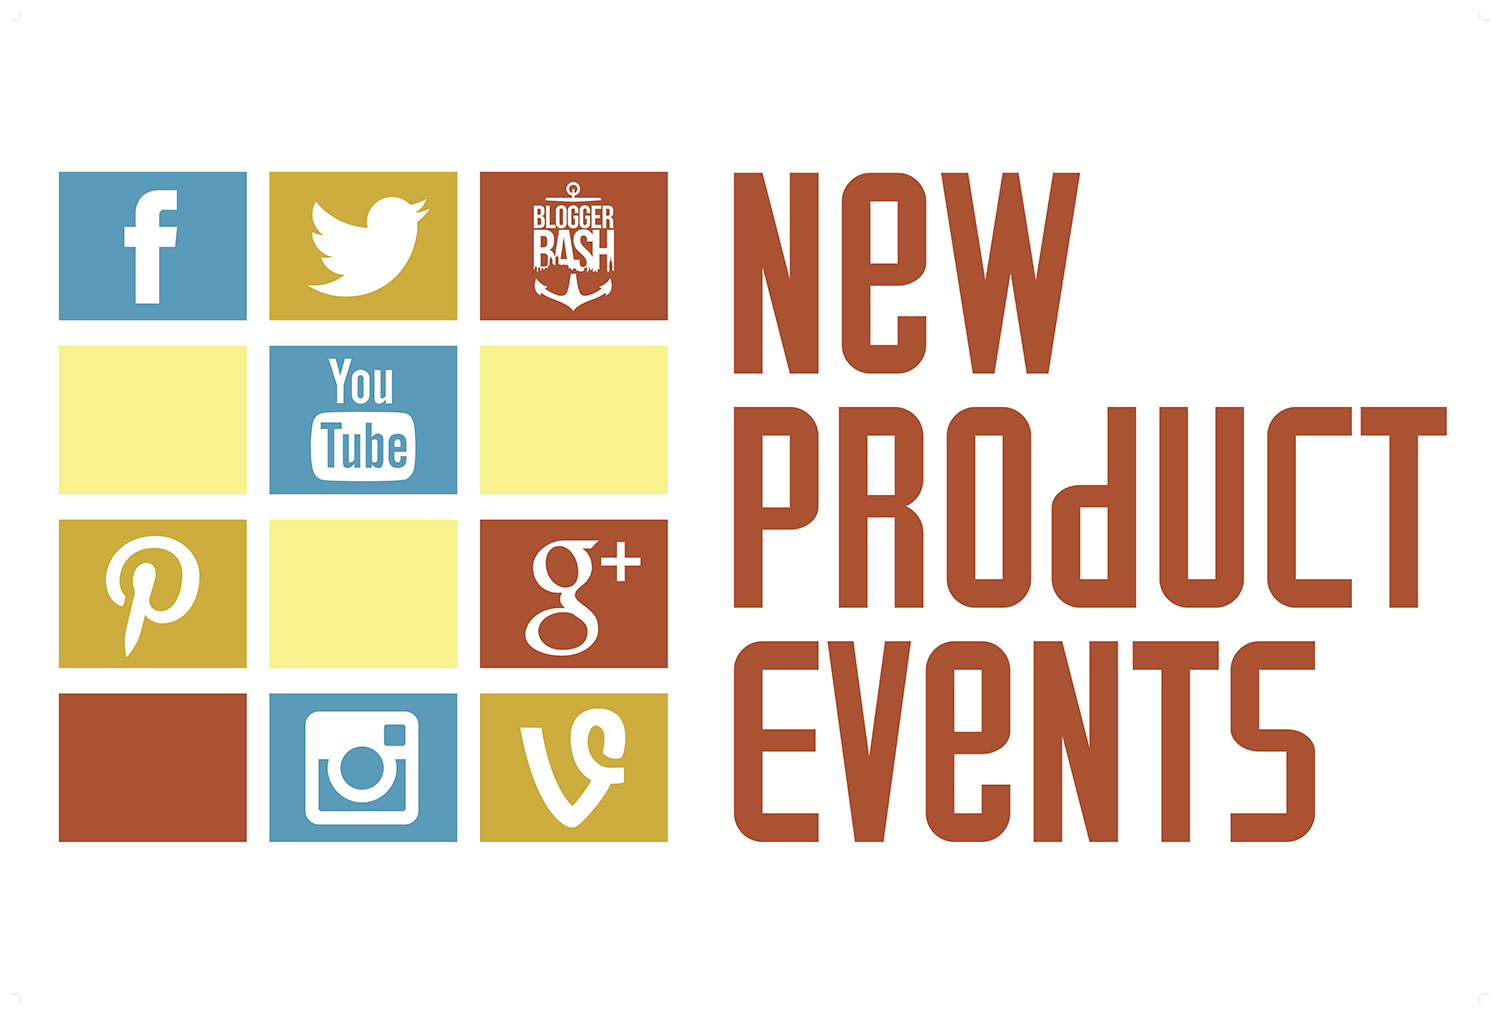 new product events image